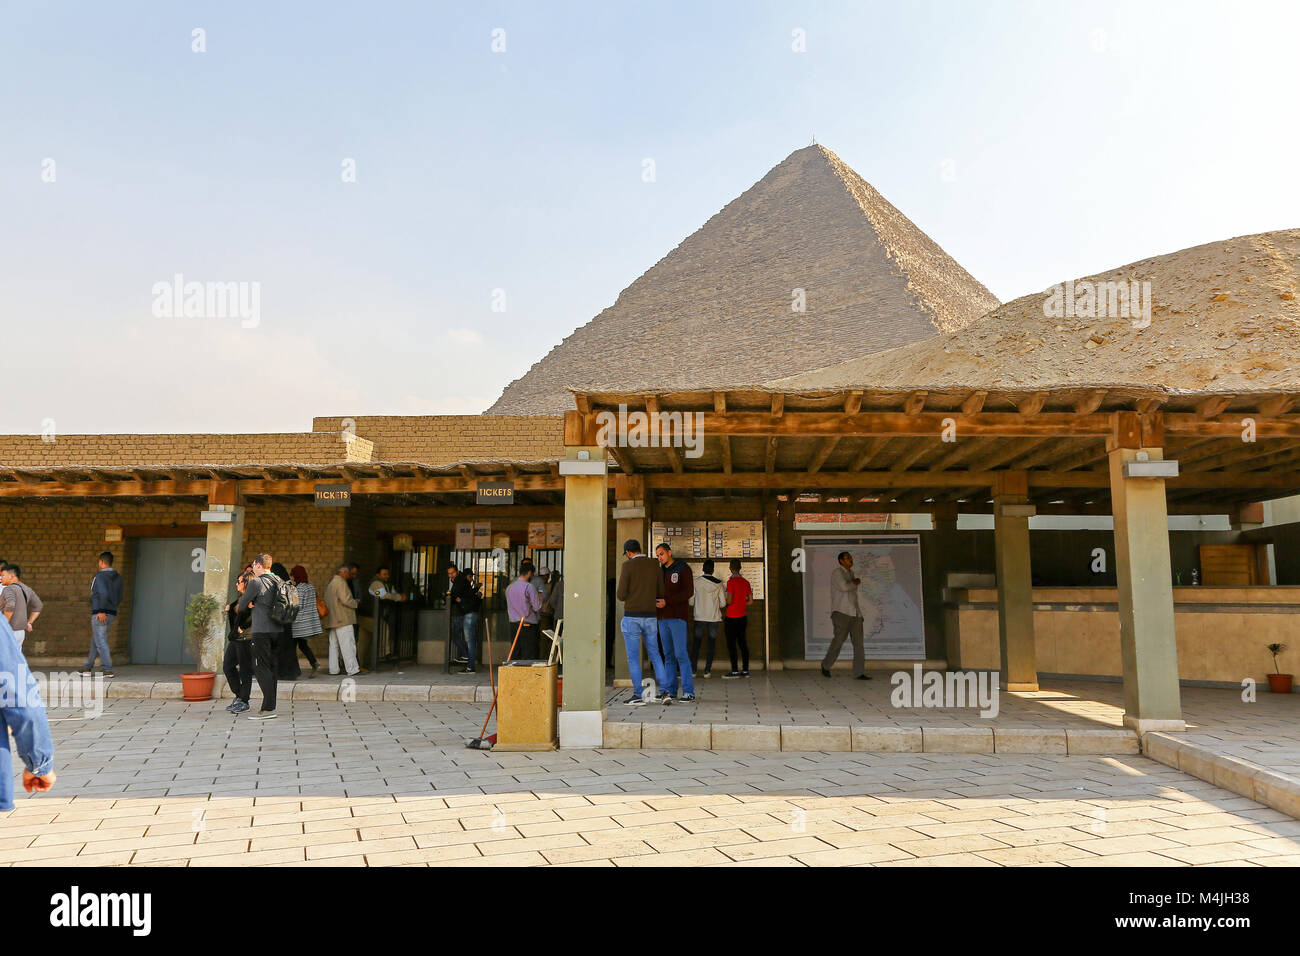 Tourists queuing up to pay at a kiosk to enter to see the Pyramids, Giza, Egypt, North Africa - Stock Image